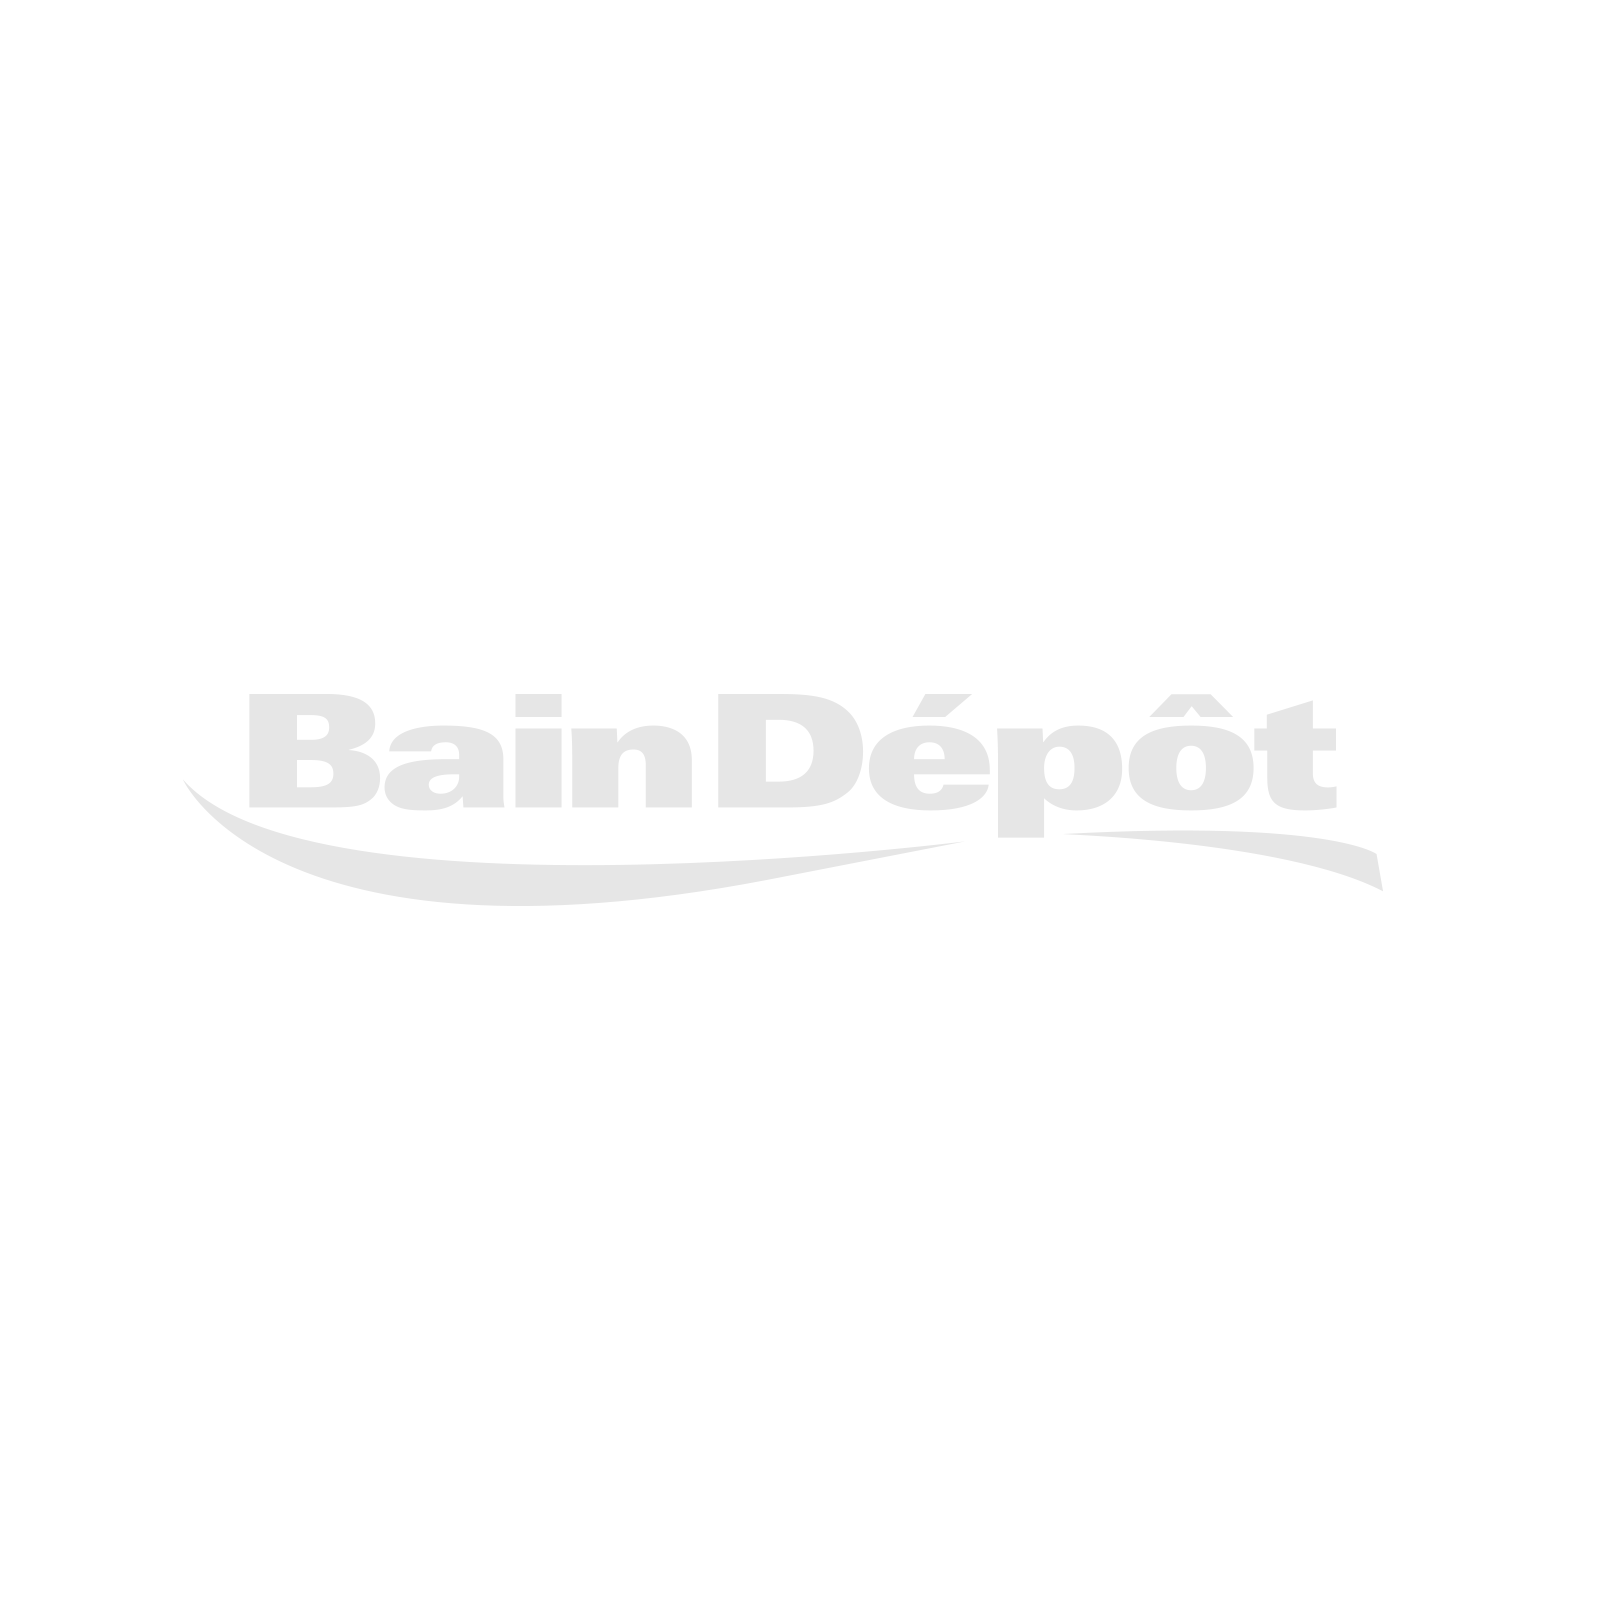 Nickel finish single-hole kitchen faucet with 8-inch deck plate